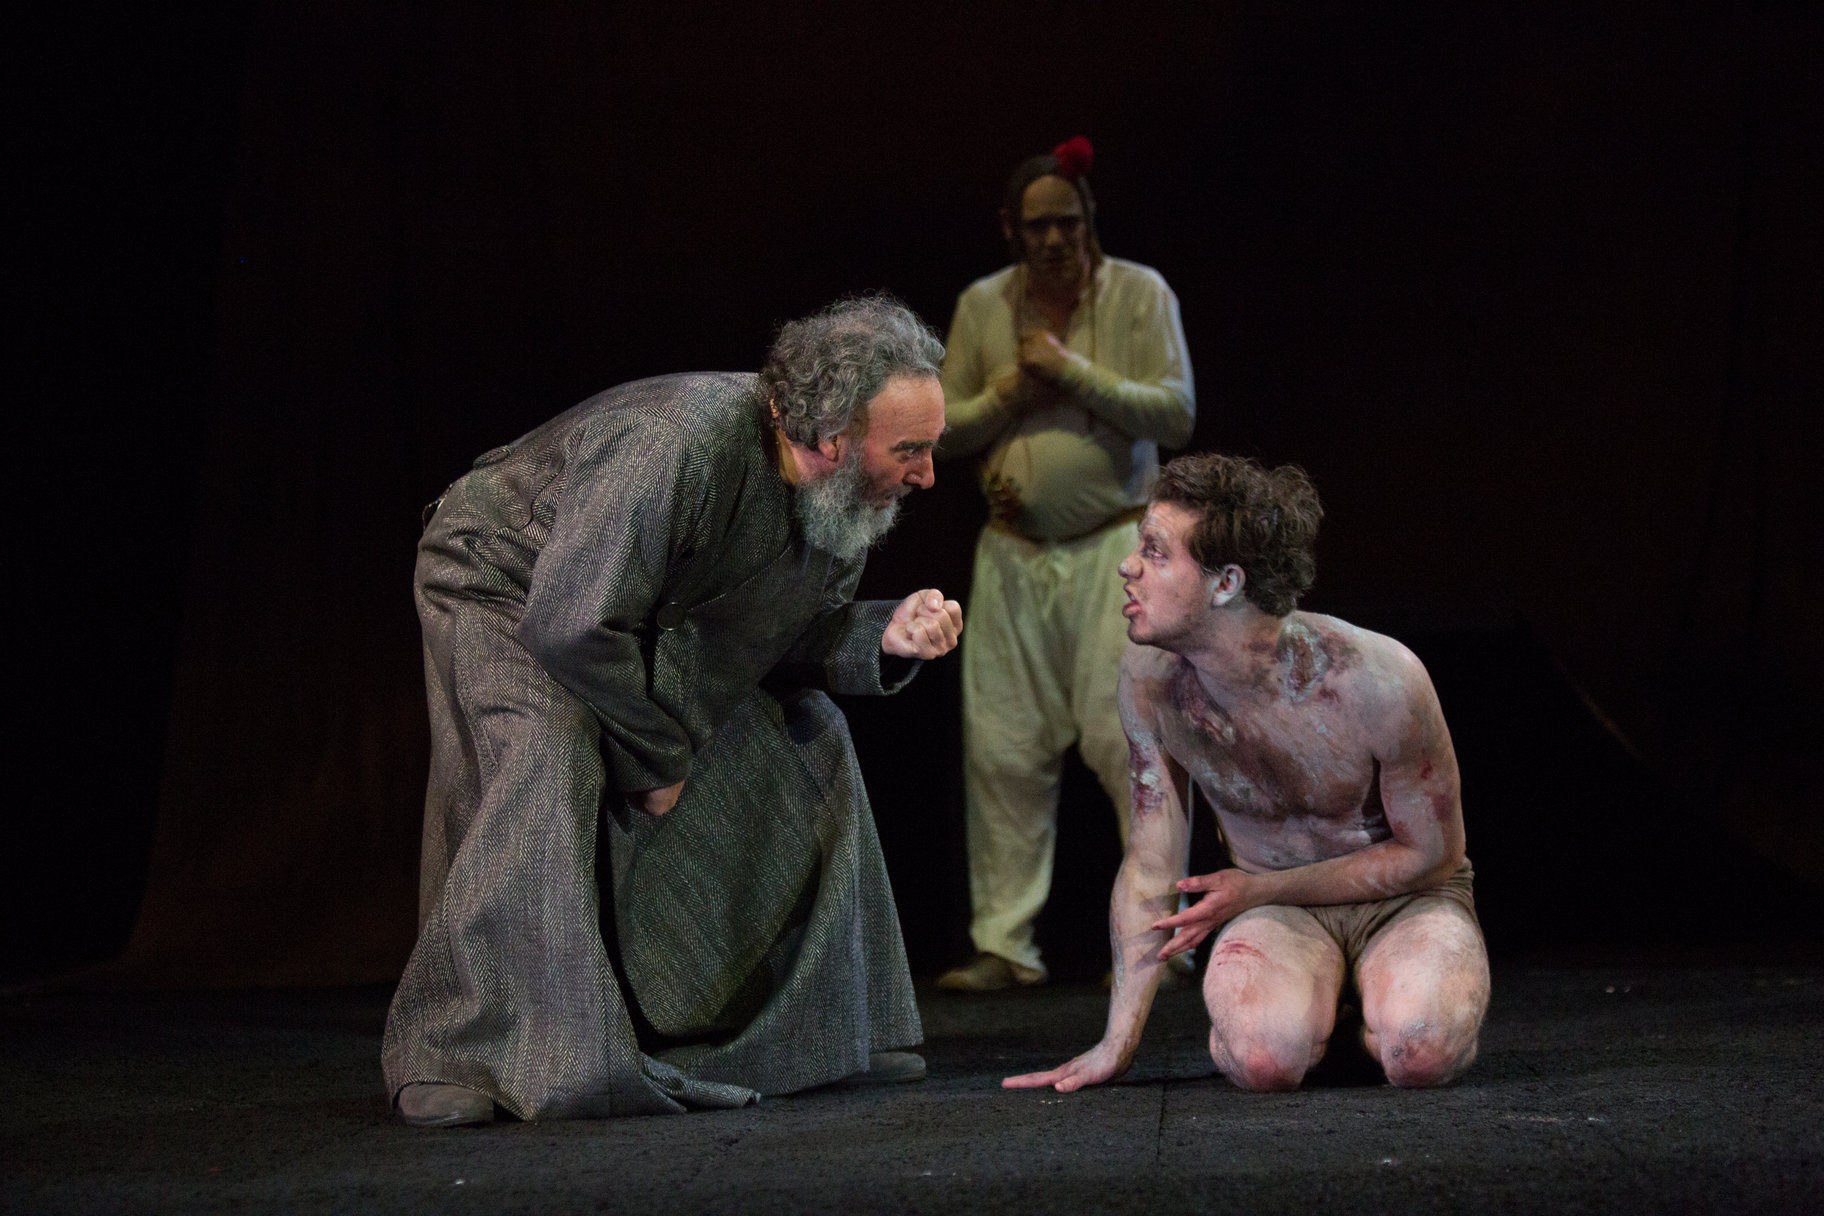 A man in a grey robe bends over a younger bare-chested man who is covered in paint.